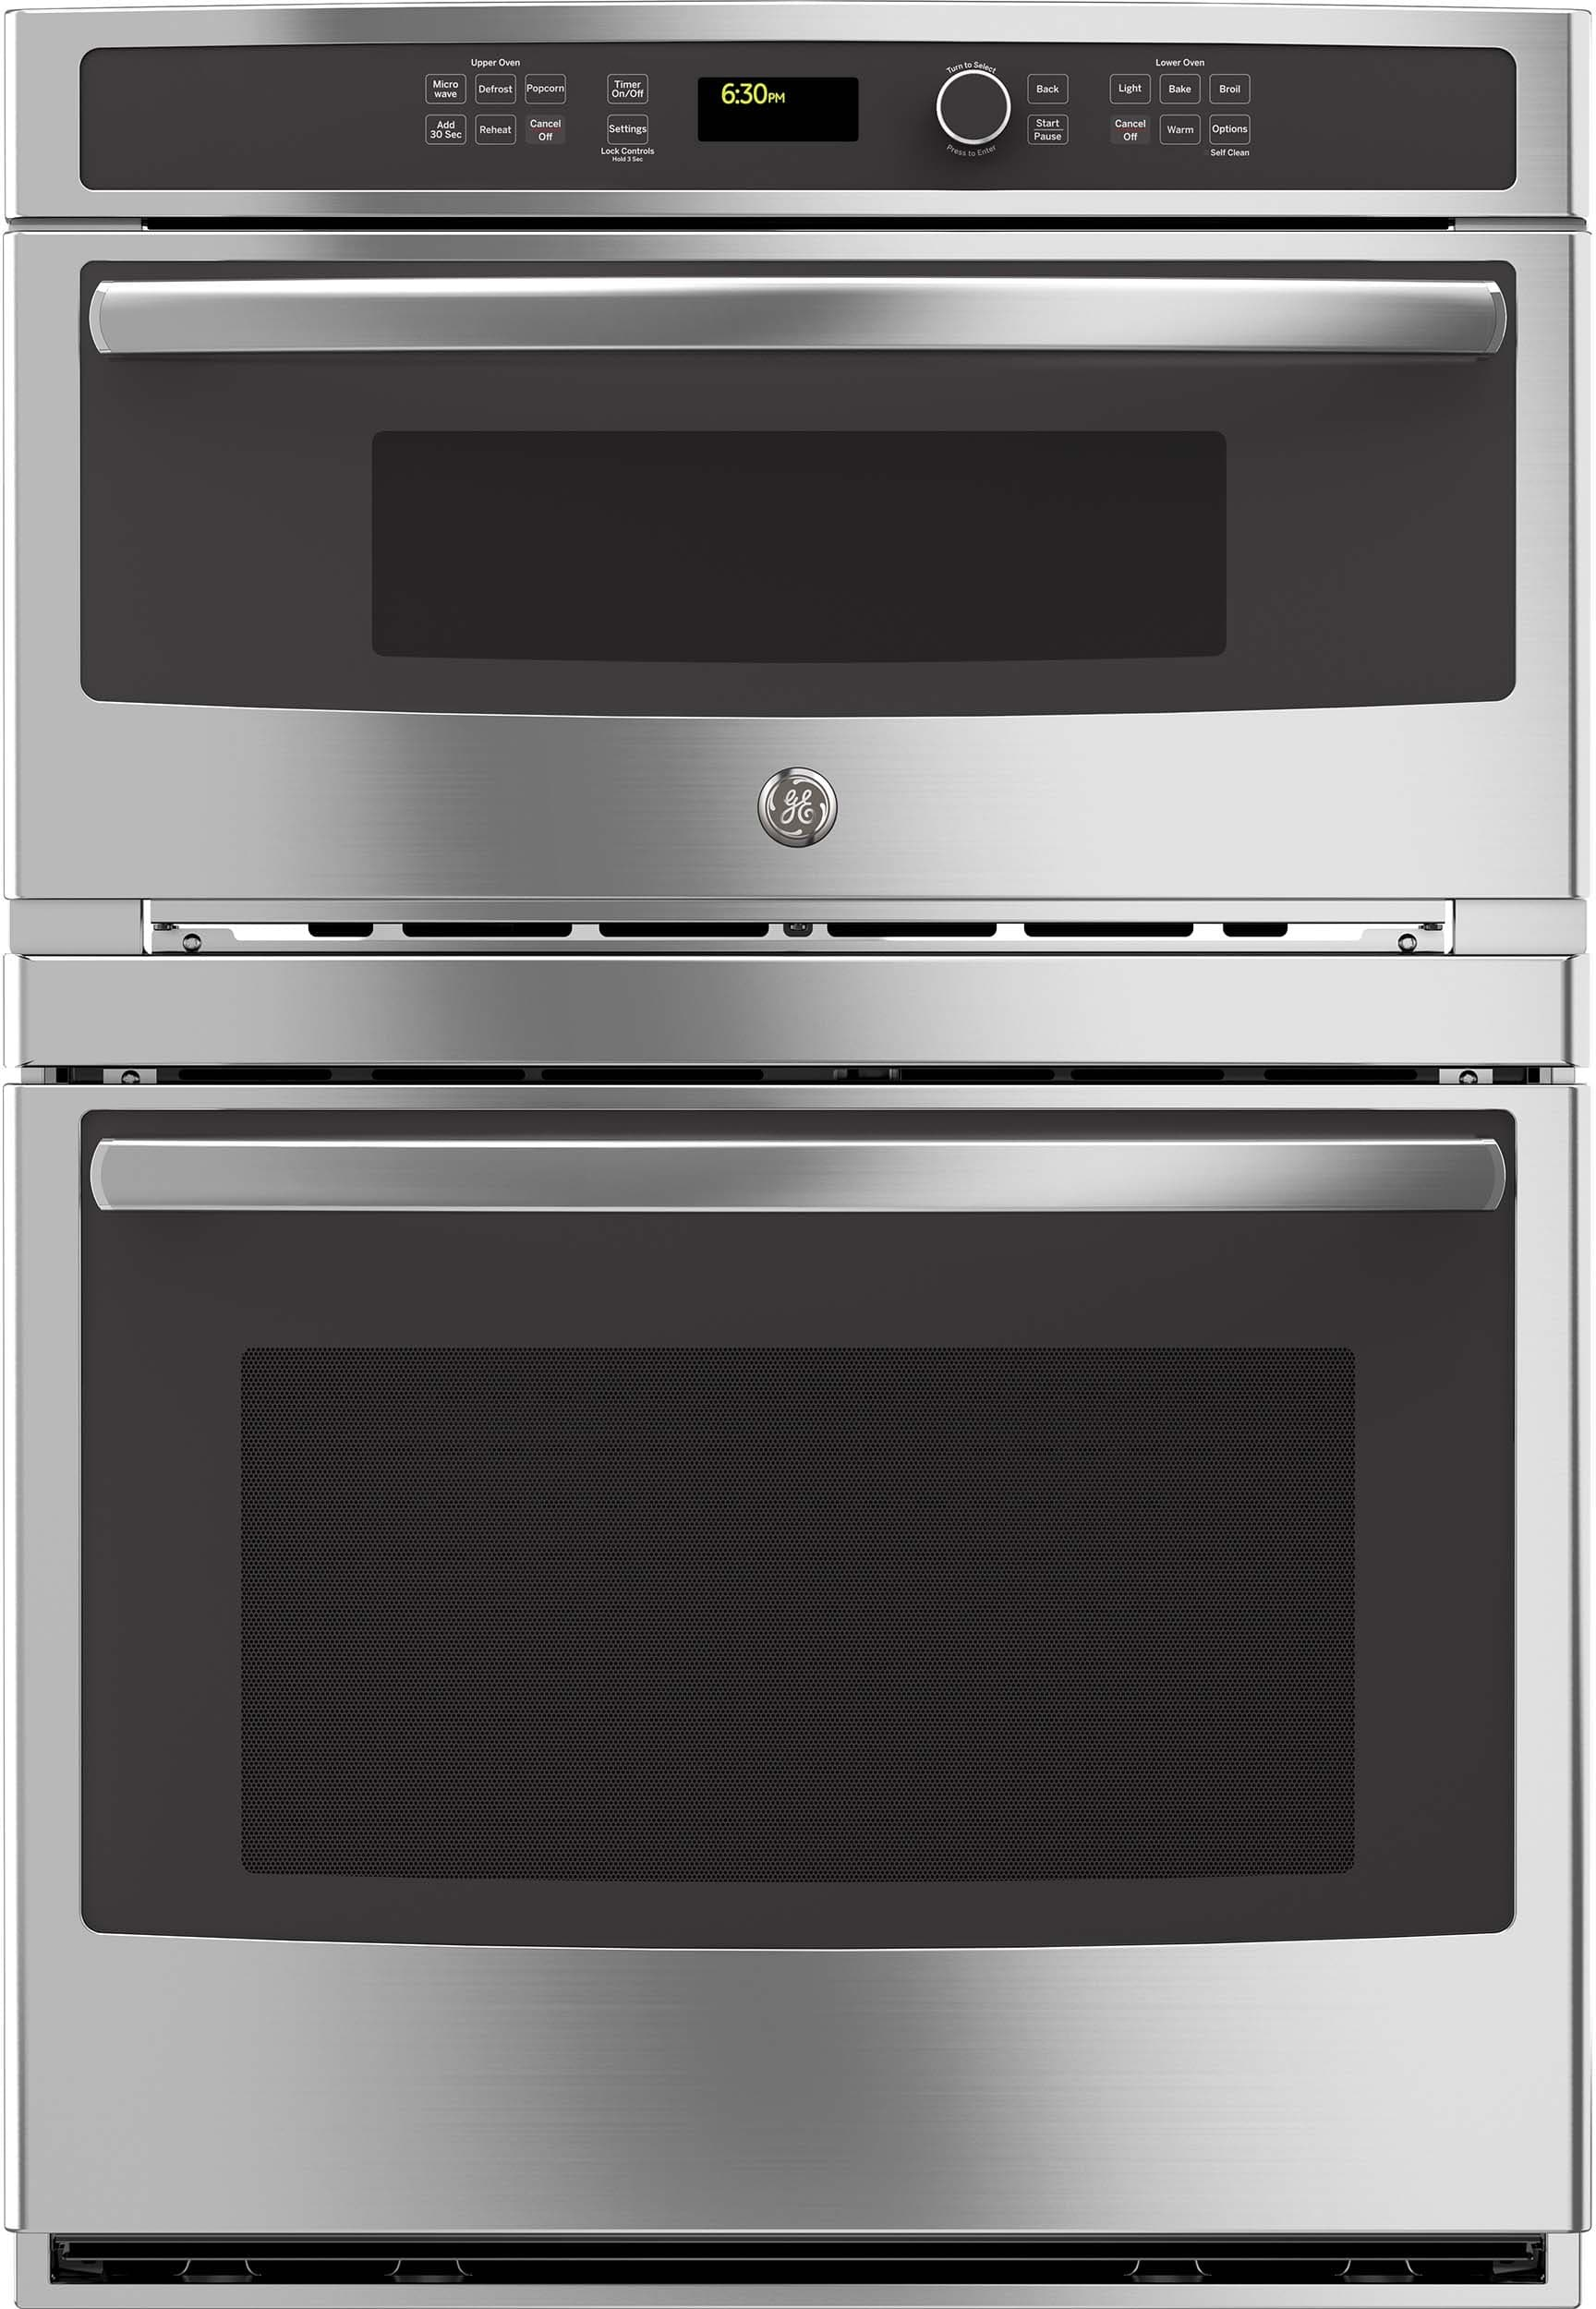 convection range over name requesttype ft appliances microwave dispatcher the drawers image sharp drawer